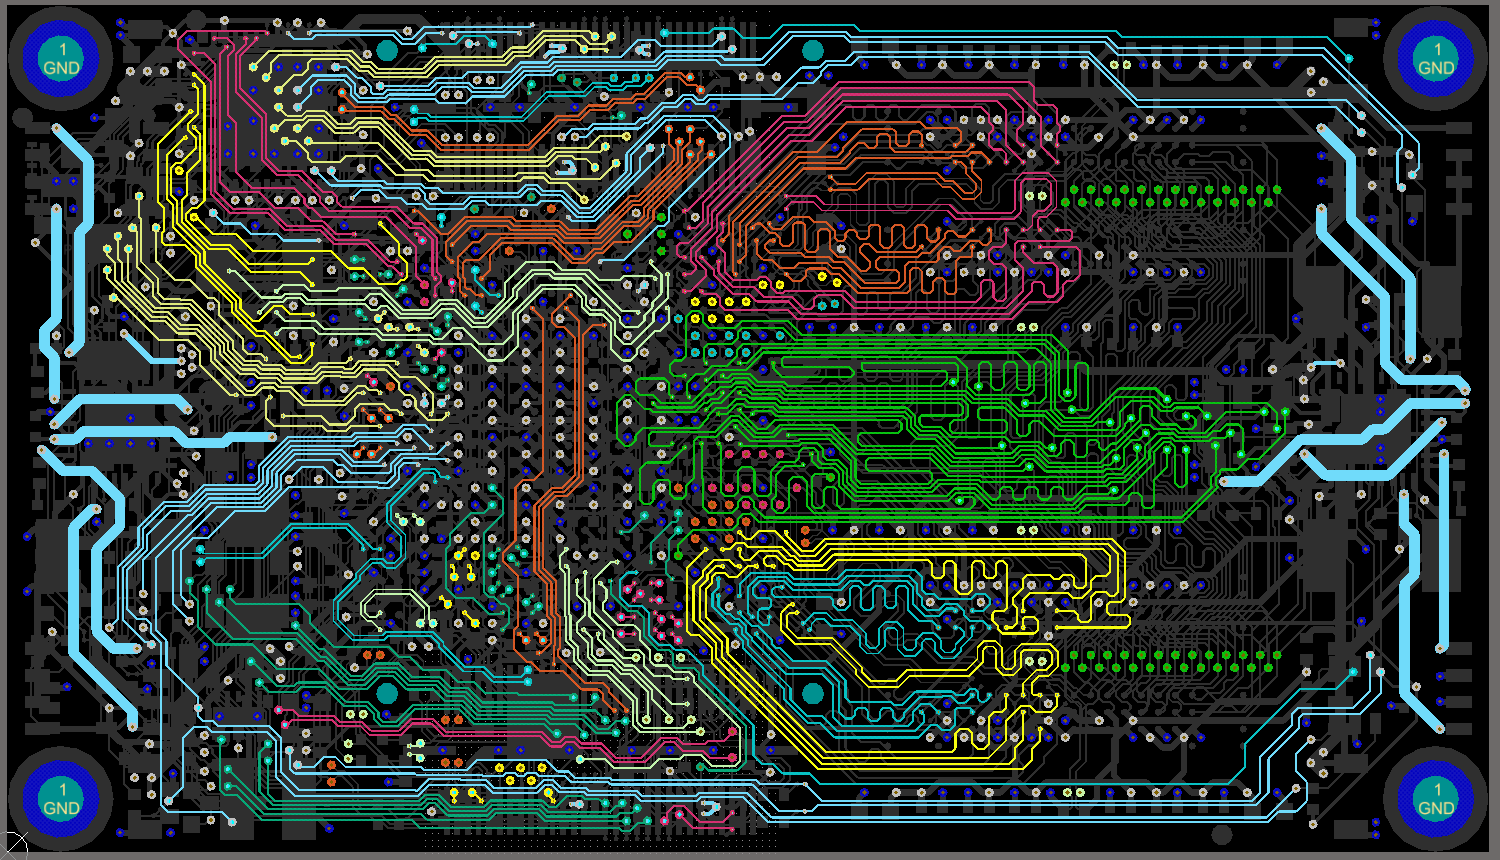 Online Advanced Pcb Layout Course  By Motherboard Designer - Welldone Blog